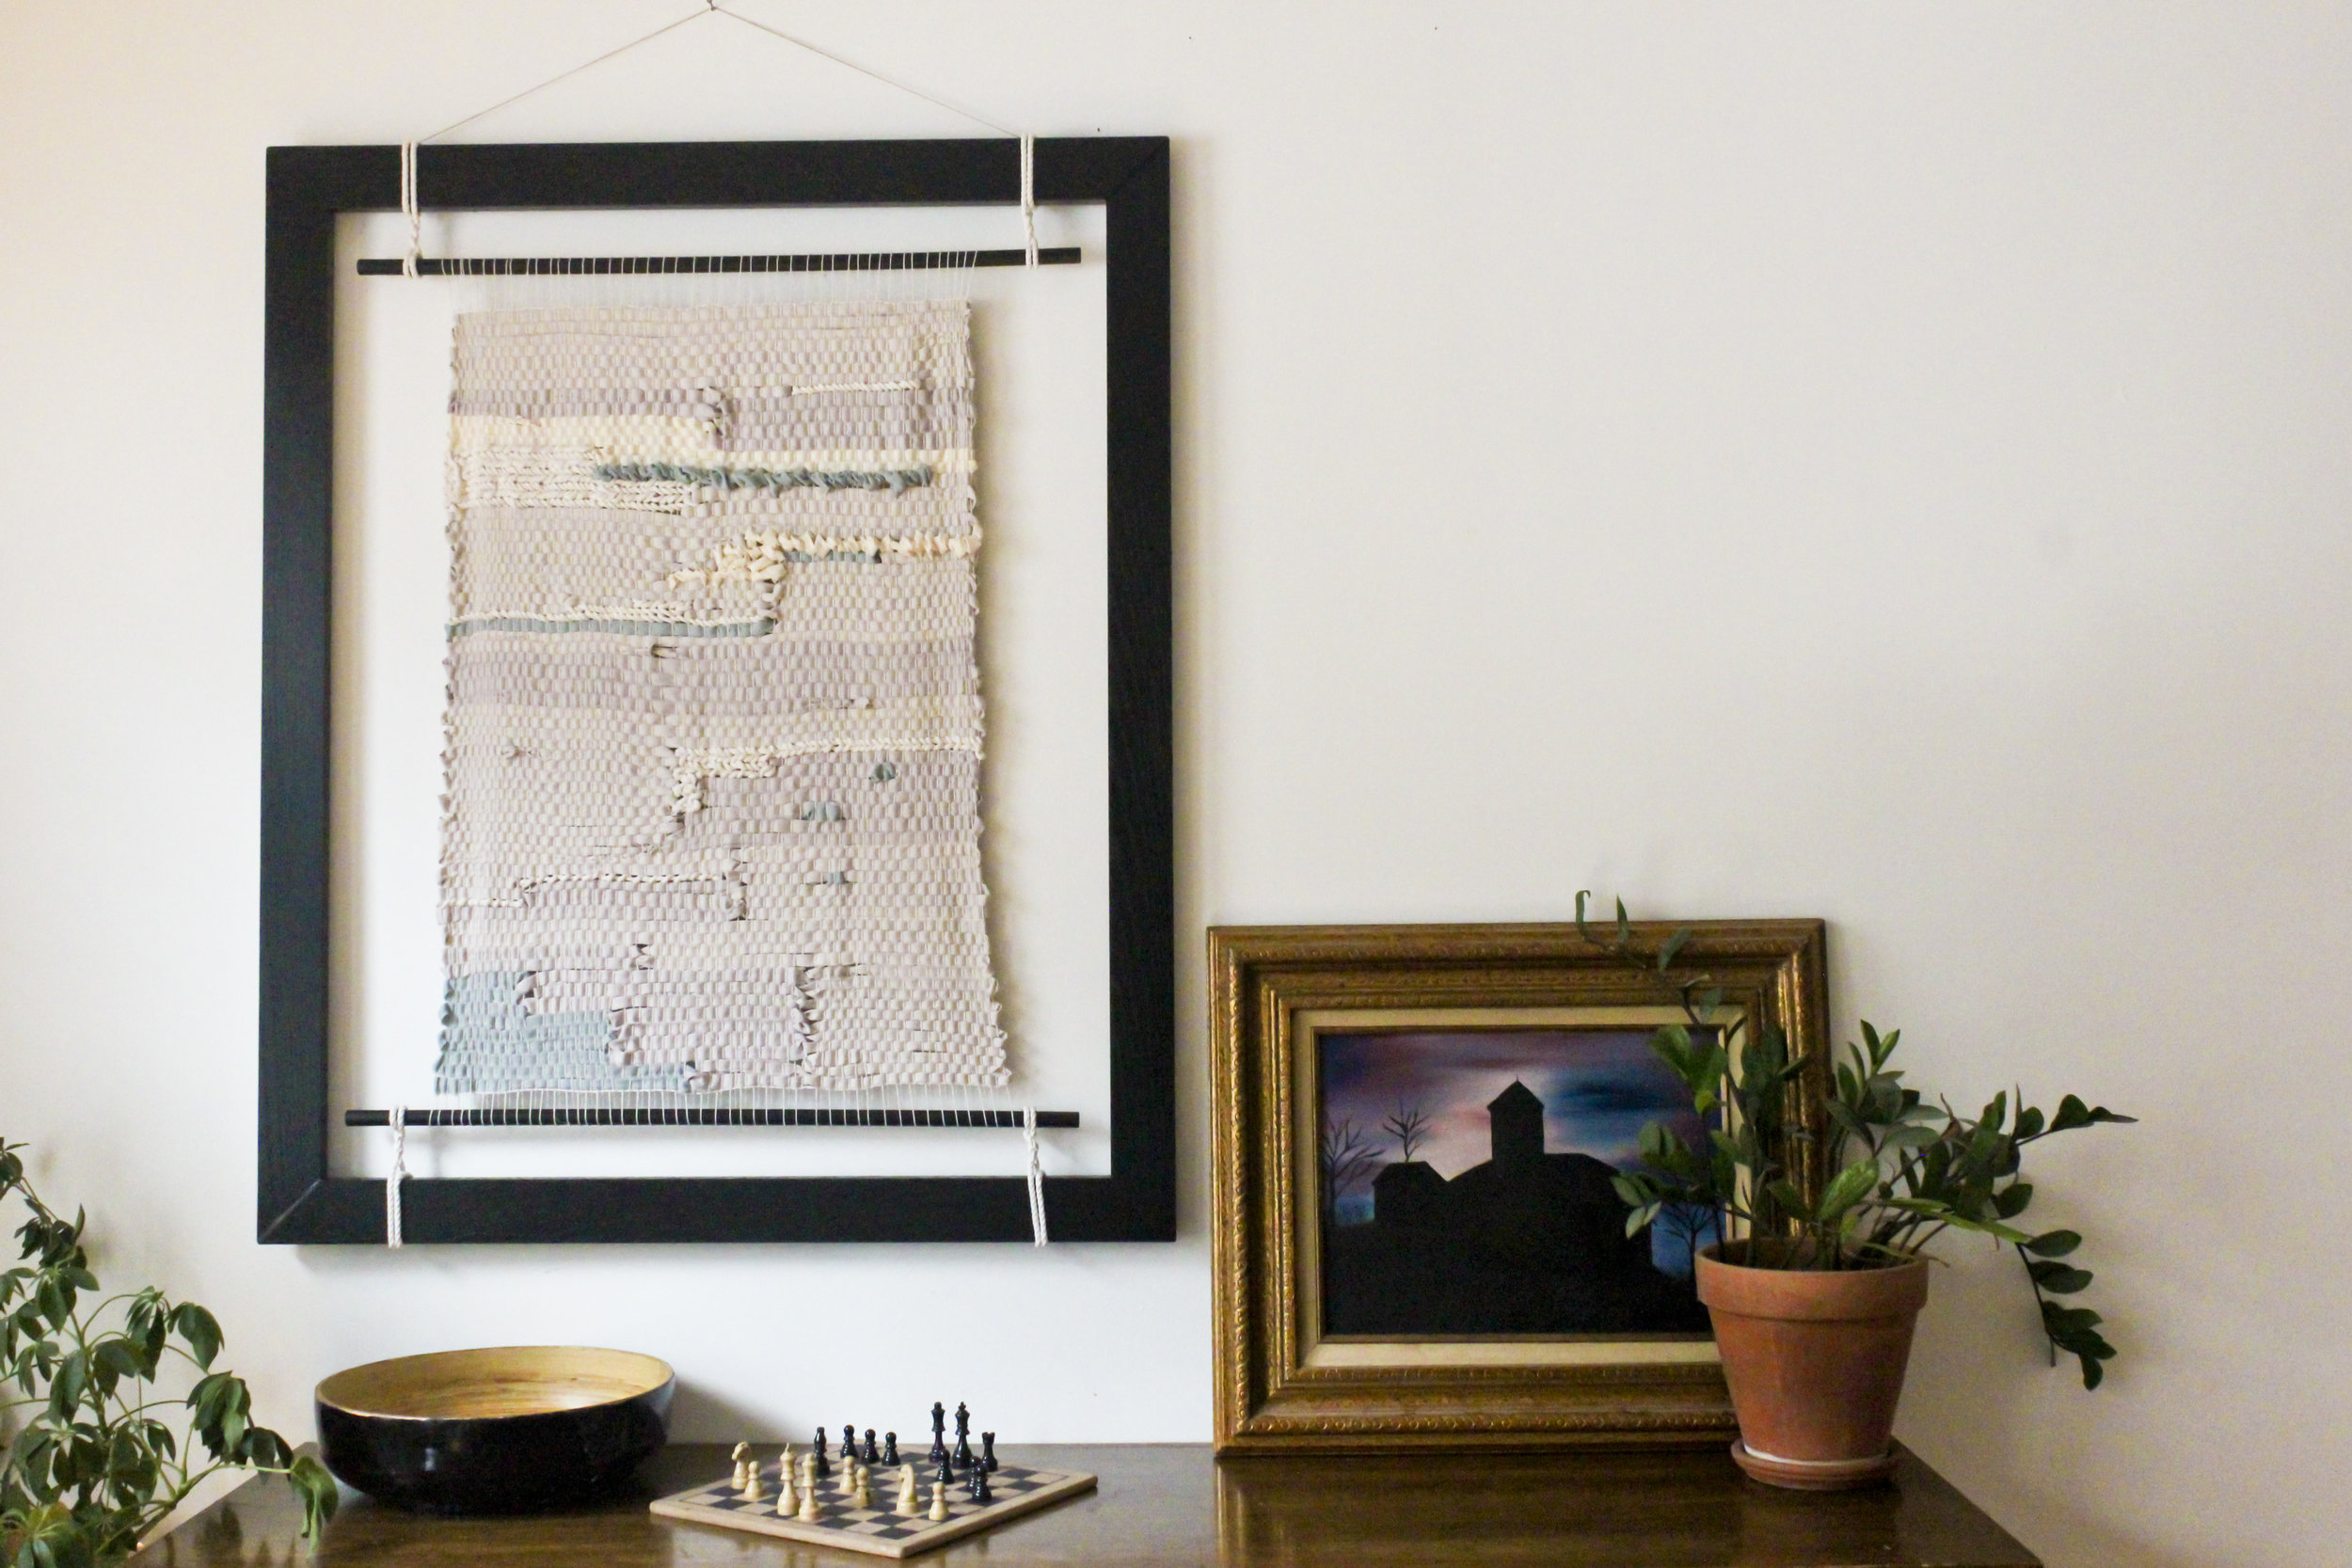 in 4 out 8. textile art woven with recycled fabrics on black frame with apron rods.